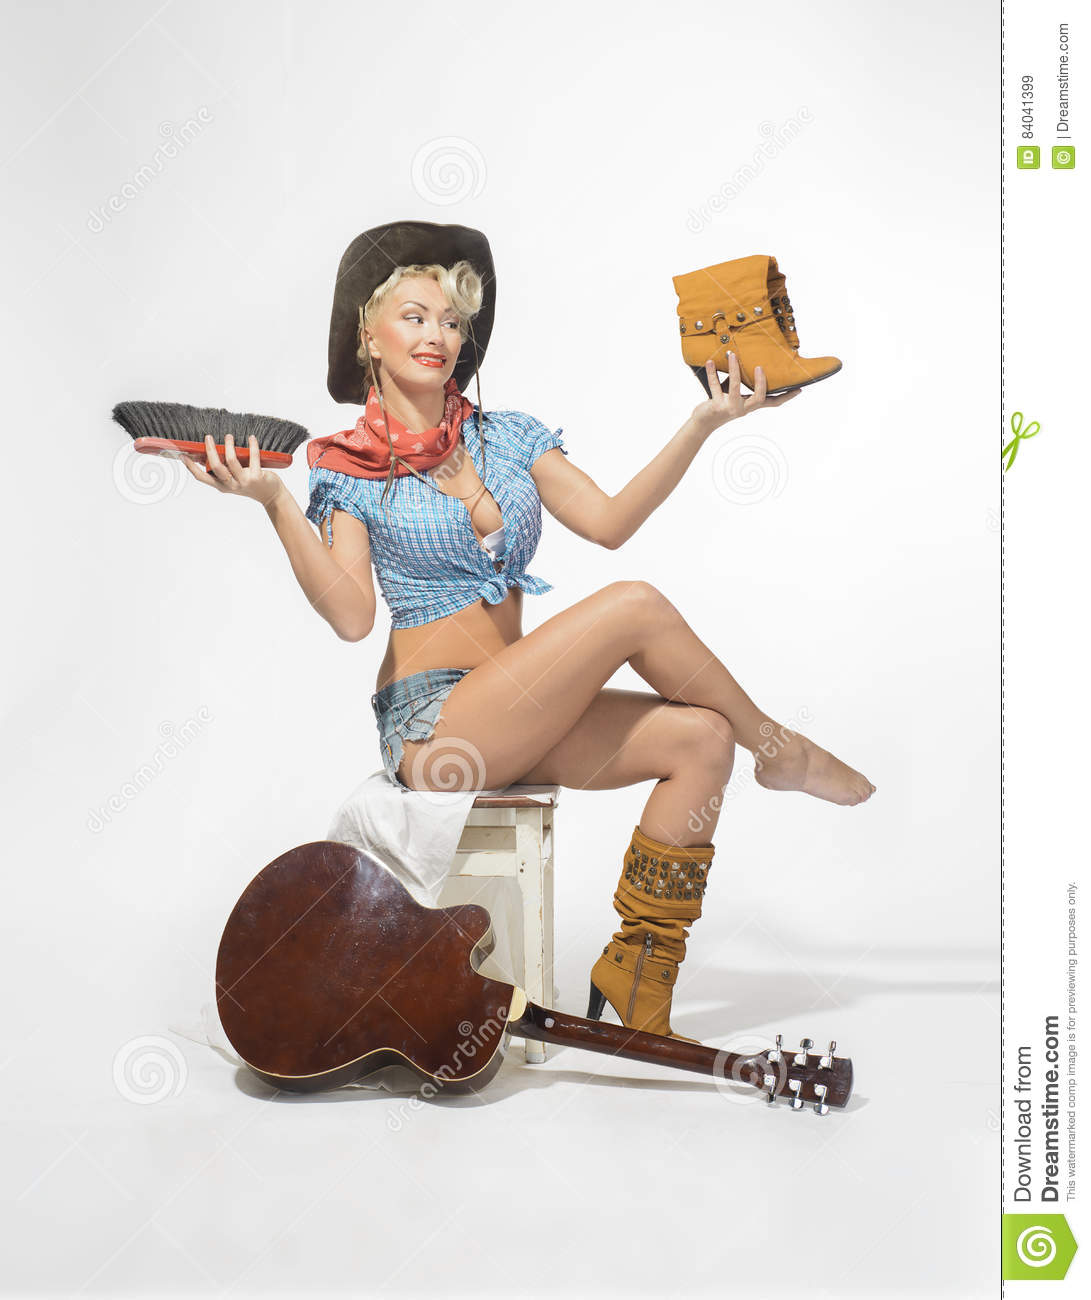 Super Sexy Rodeo Cowgirl In Shorts Jeans Boots Royalty Free Stock Photography Cartoondealer